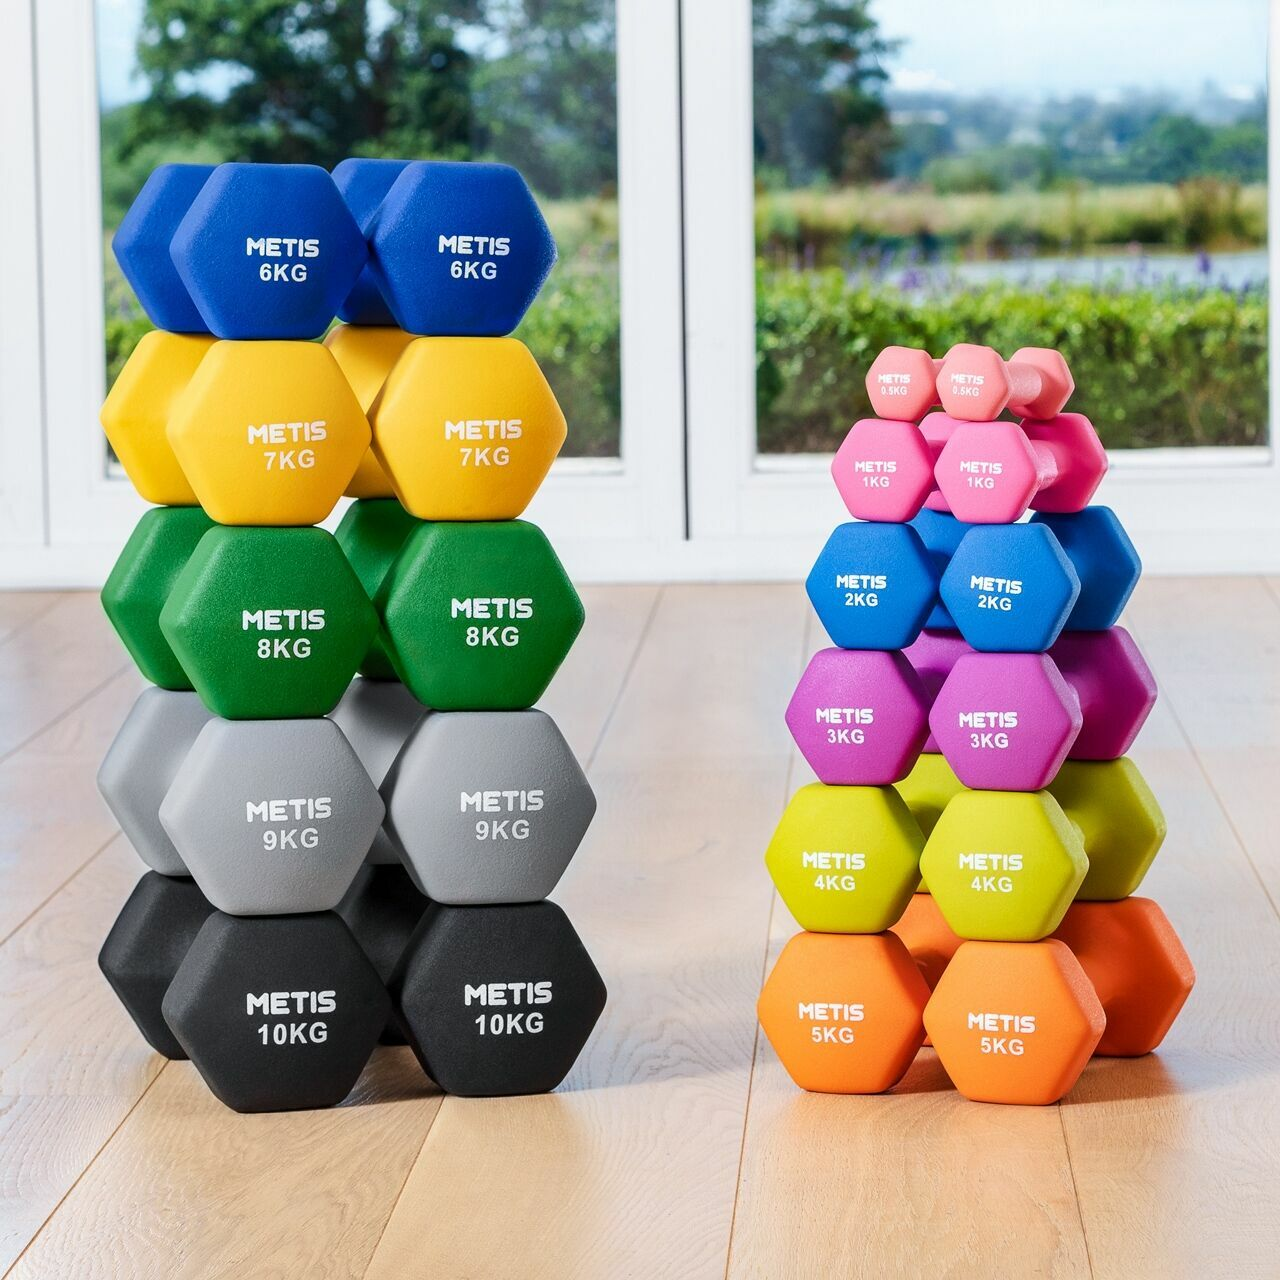 METIS Neoprene Hex Dumbbells [0.5kg-10kg] - Pair